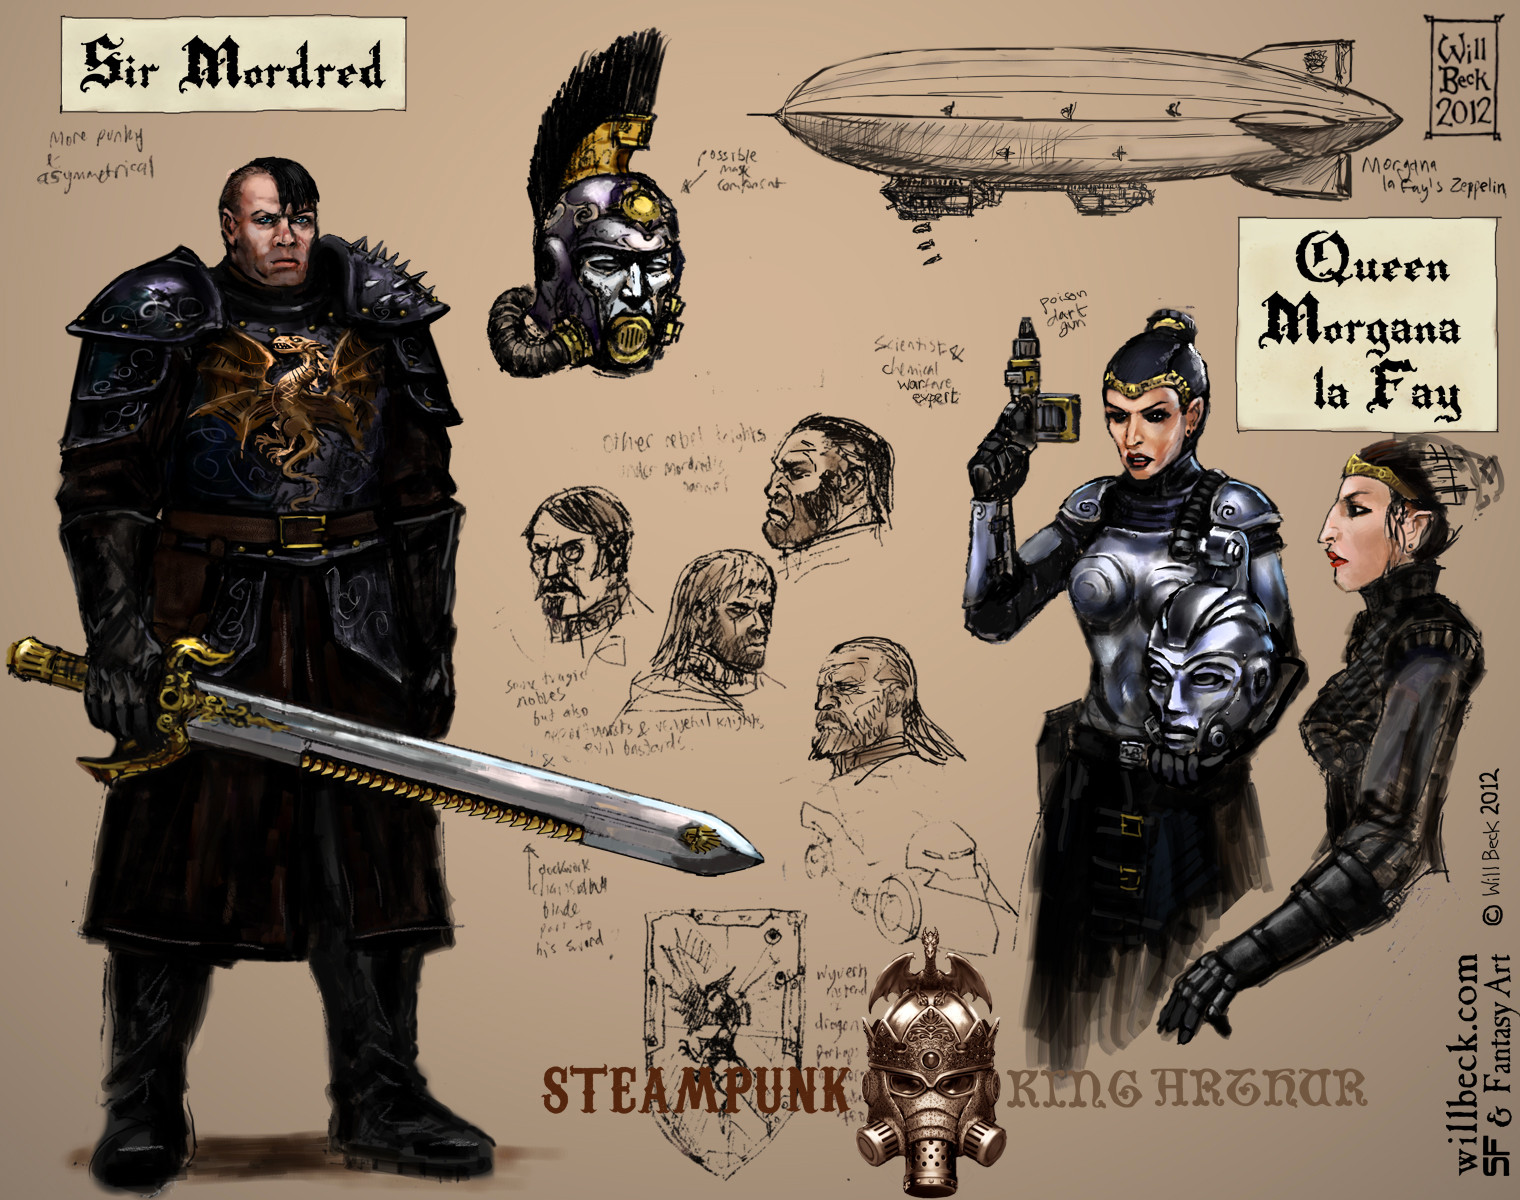 Steampunk Sir Mordred and Queen Morgana